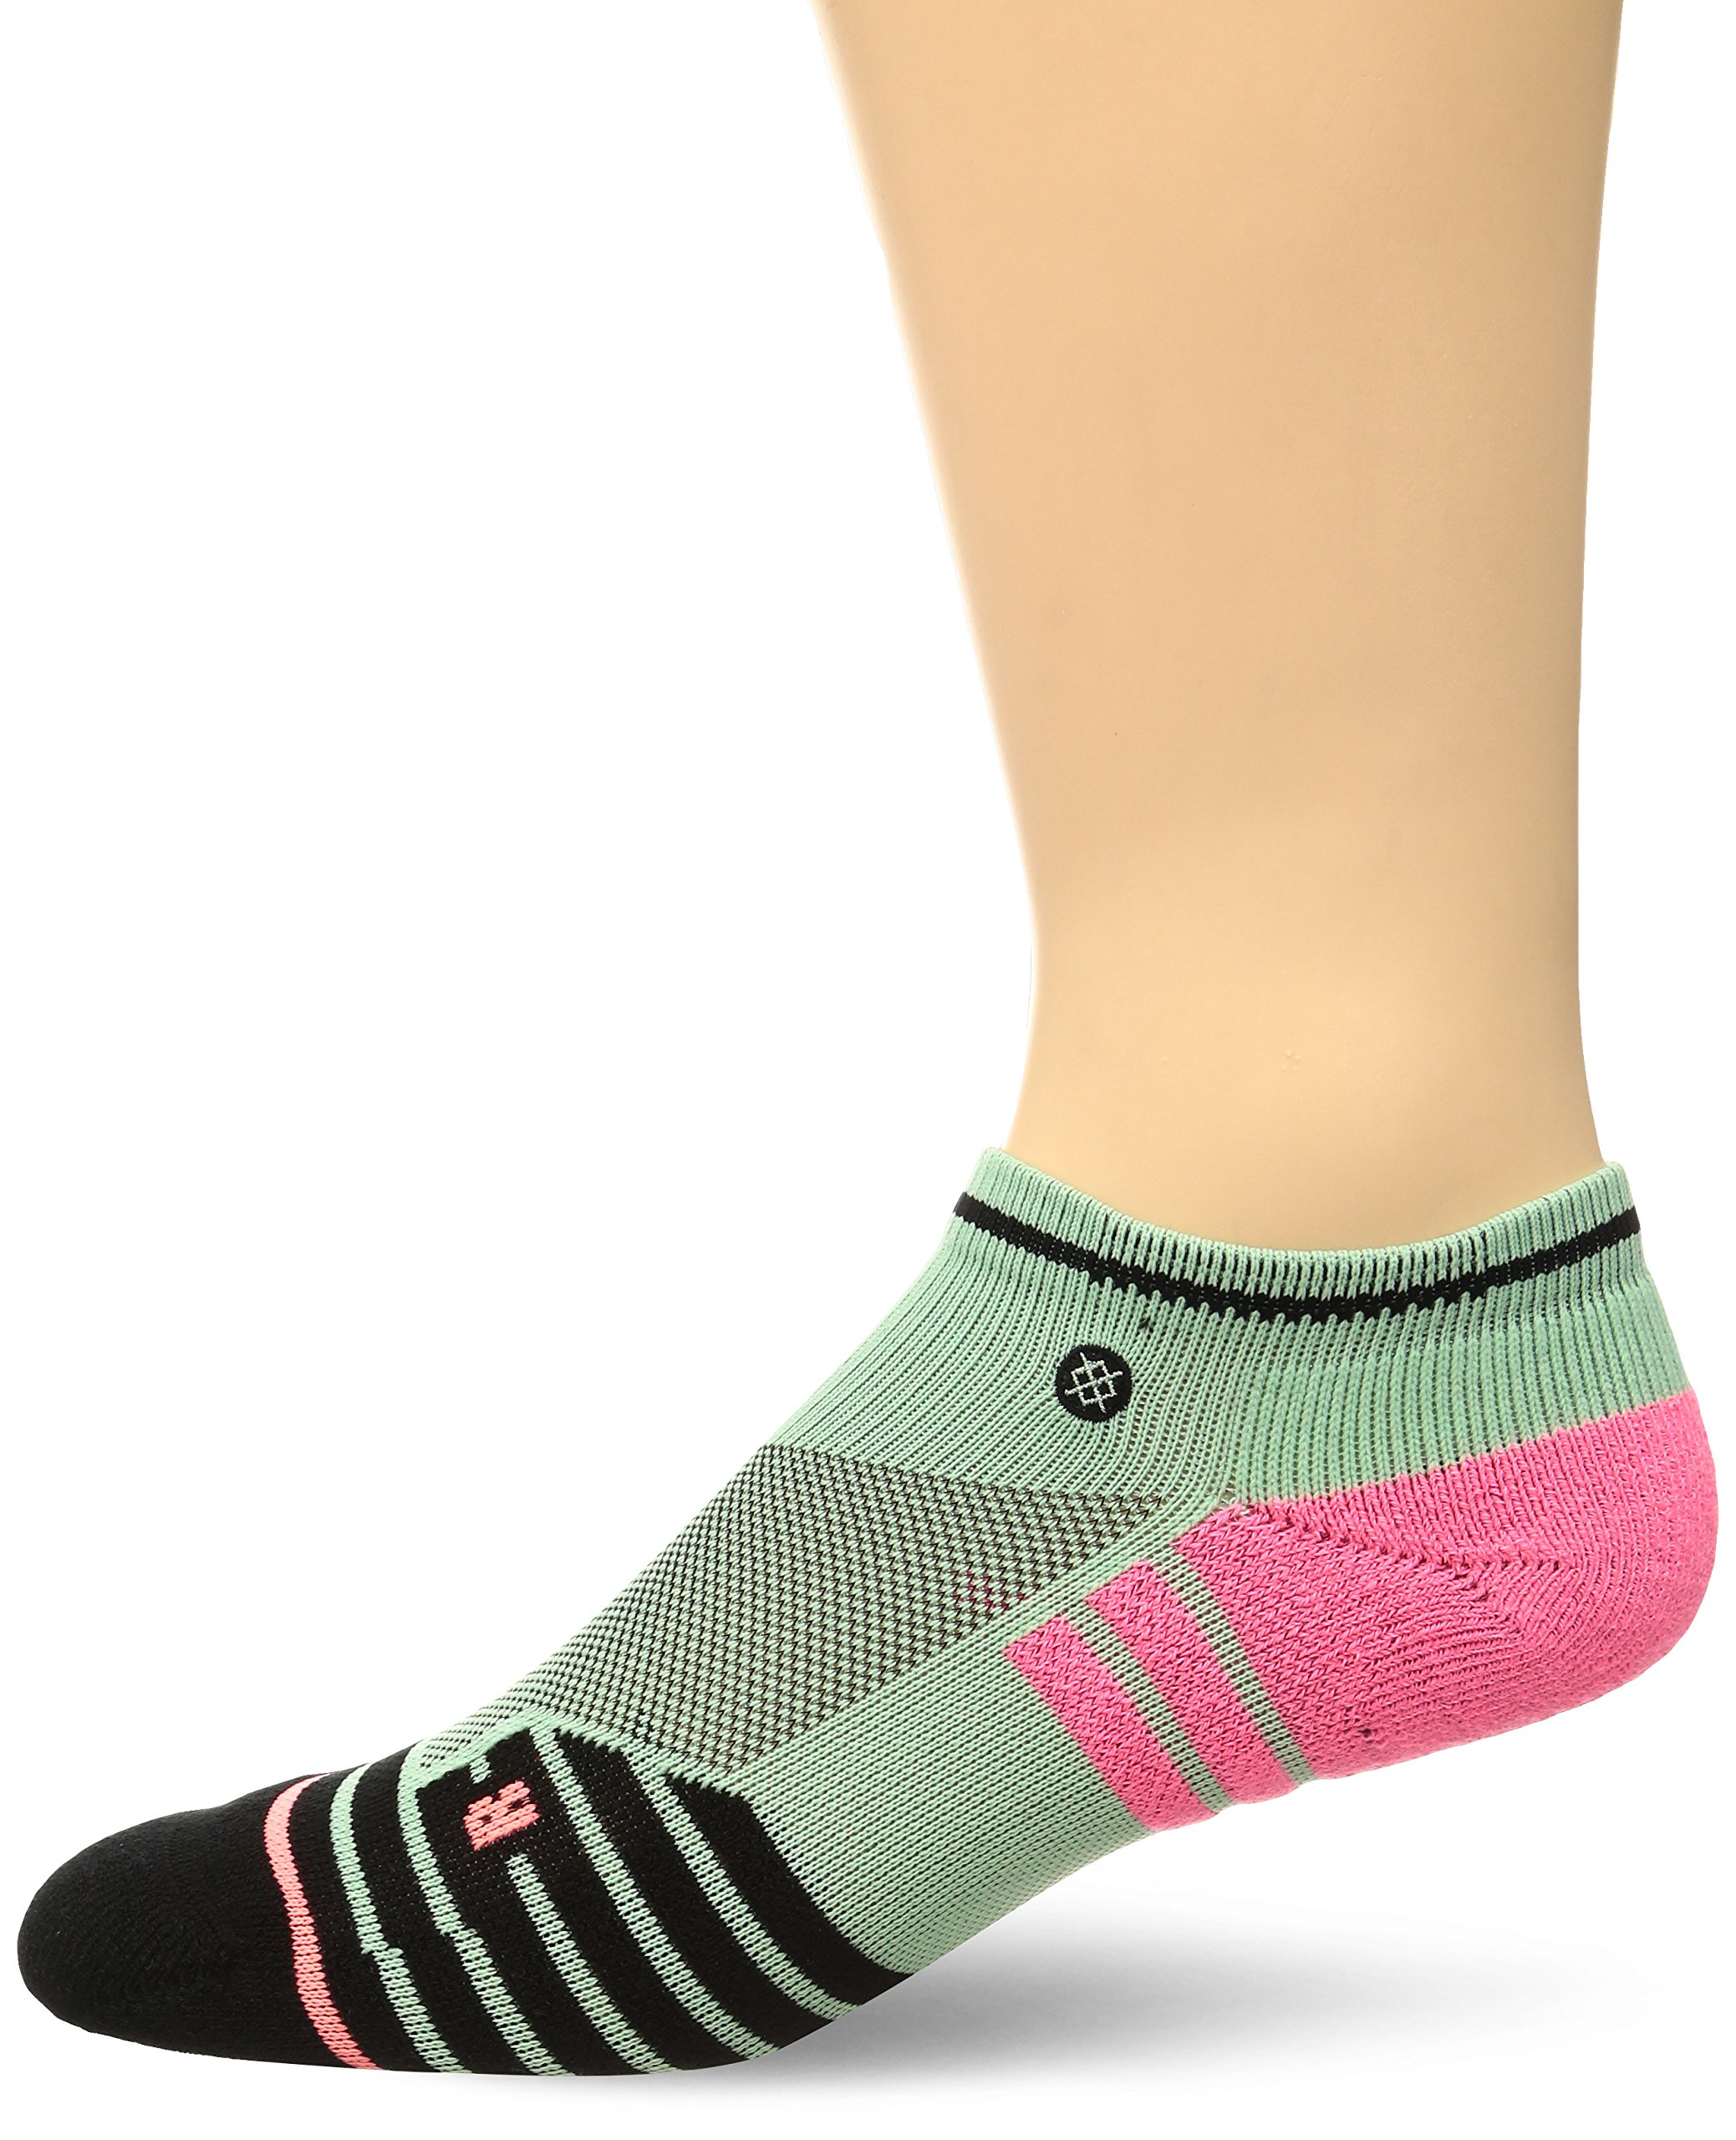 Stance Women's Acapulco Low Ankle Sock, Seafoam, Small